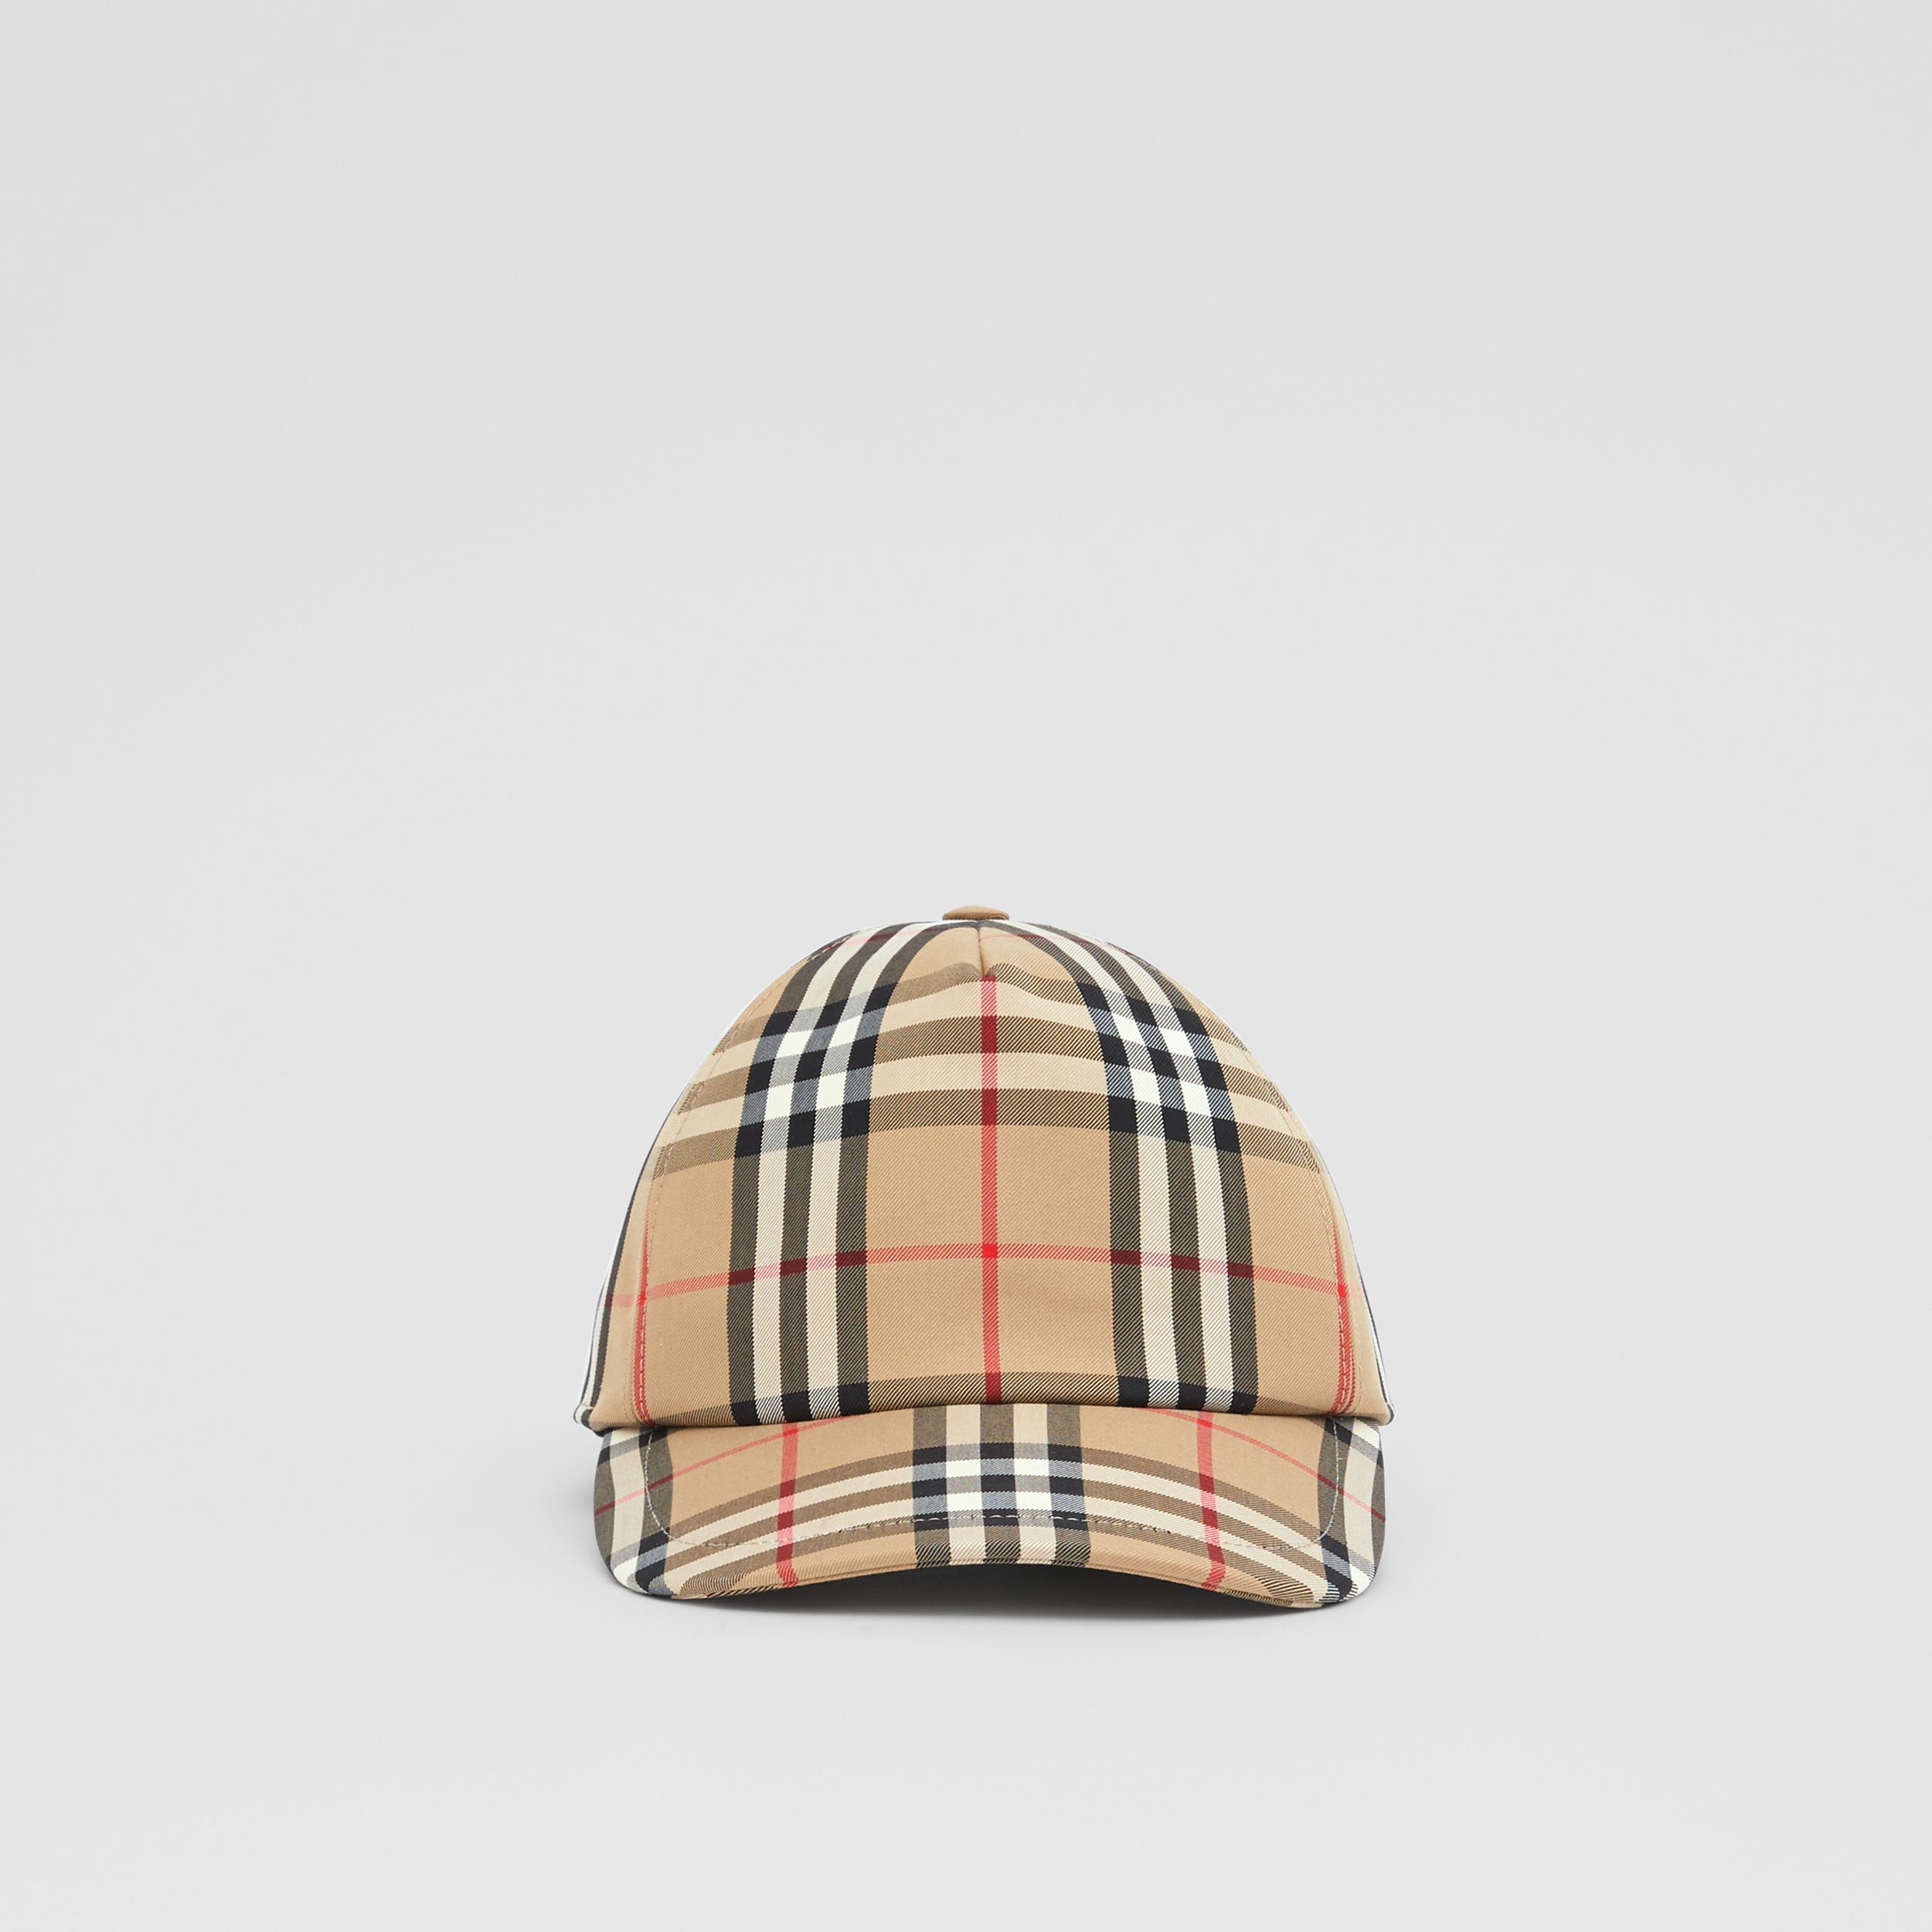 Logo Appliqué Vintage Check Baseball Cap in Archive Beige | Burberry - 4